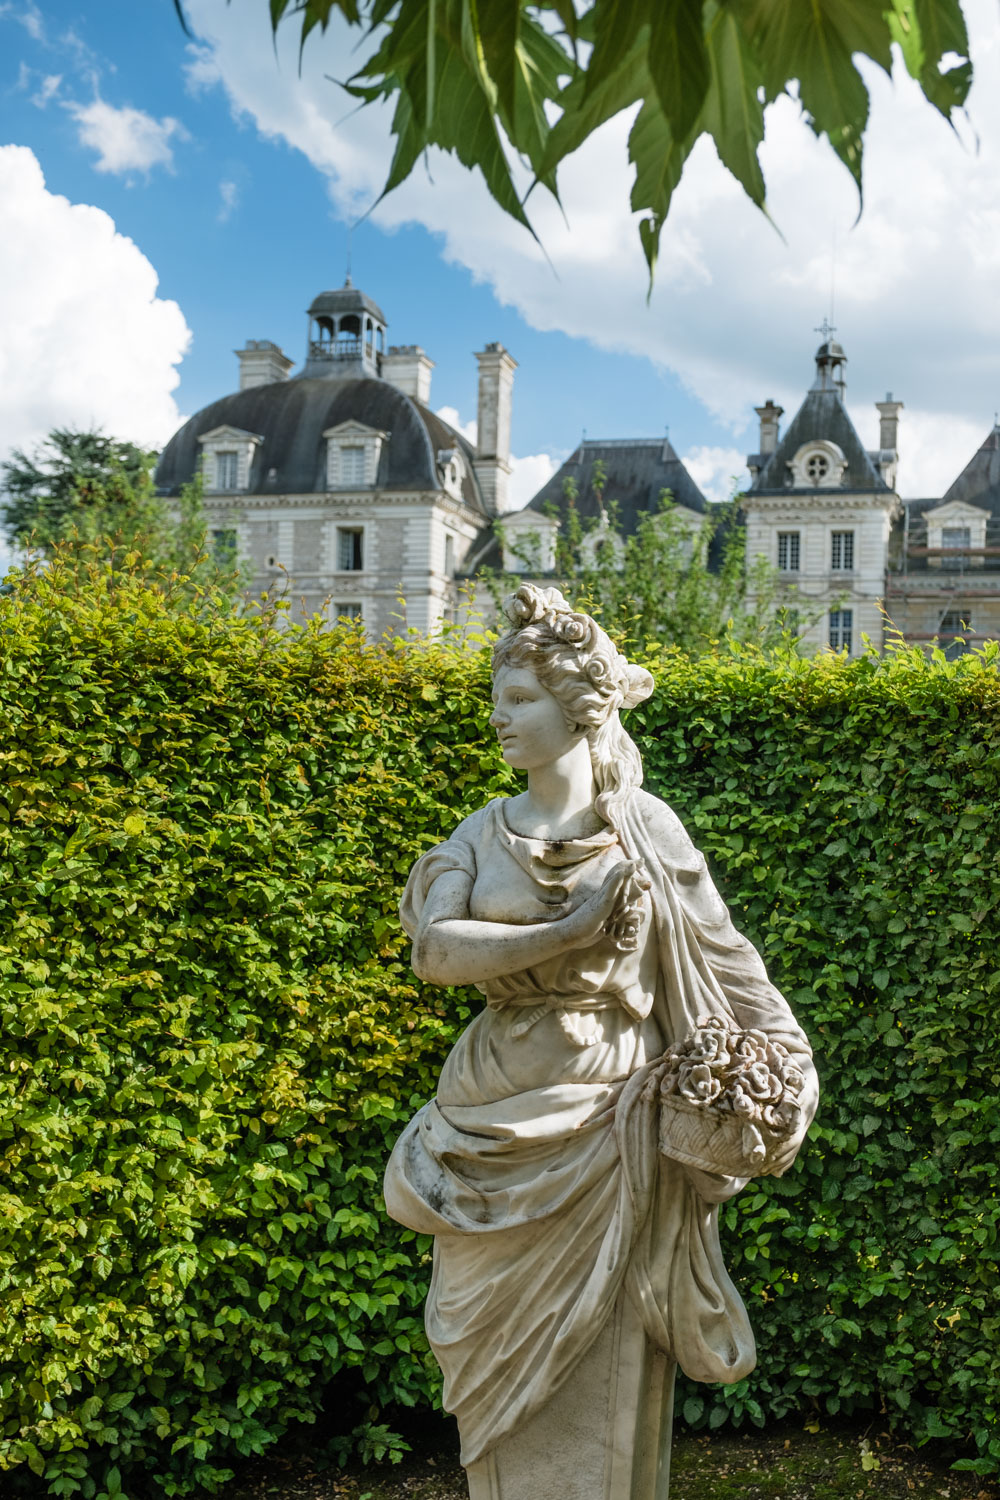 """A statue in the gardens of Cheverny -Travel photography and guide by © Natasha Lequepeys for """"And Then I Met Yoko"""". #loirevalley #france #travelguide #travelphotography #valdeloire"""